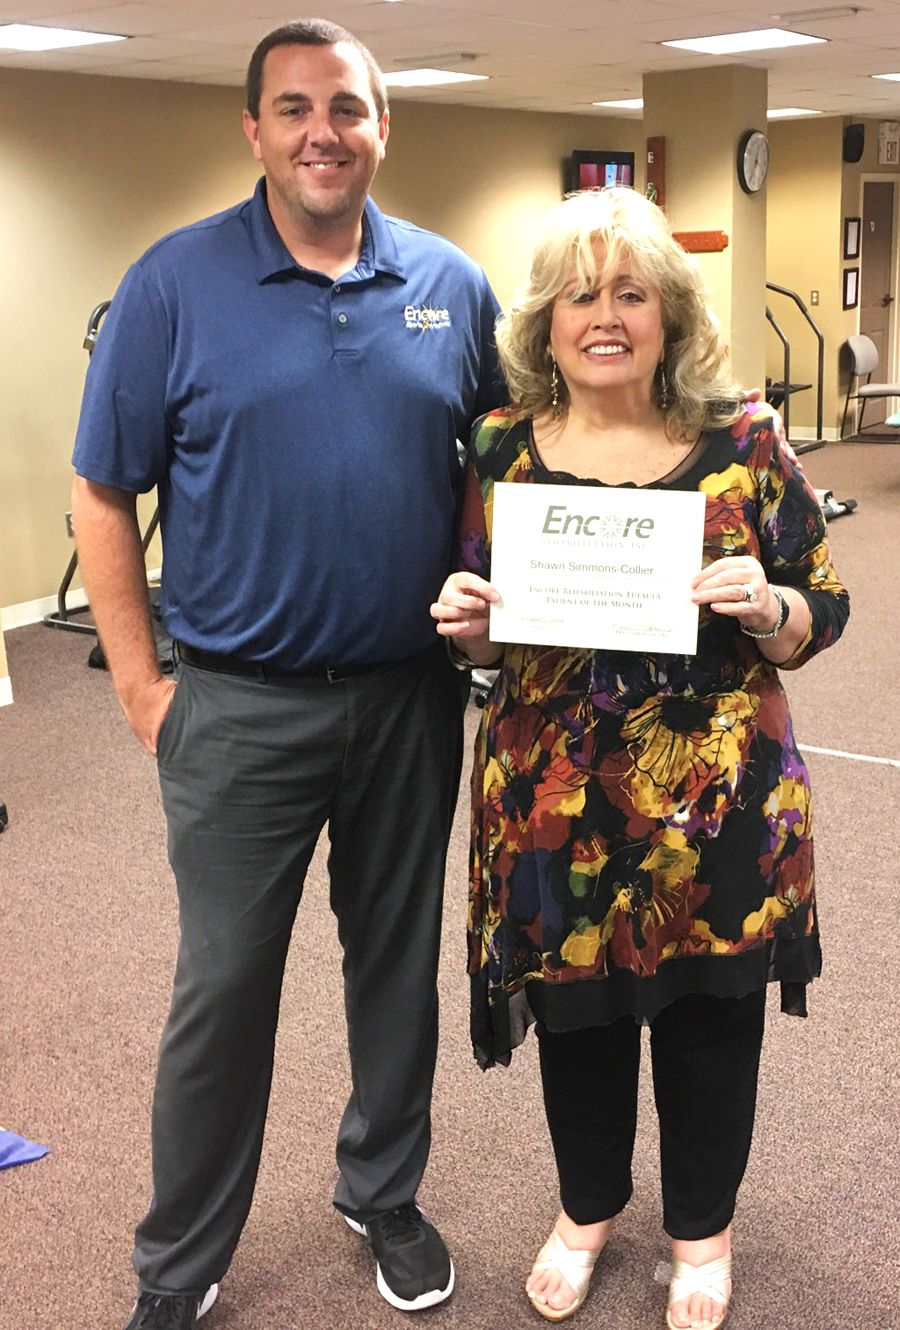 Shawn Collier is Patient of the Month for Encore